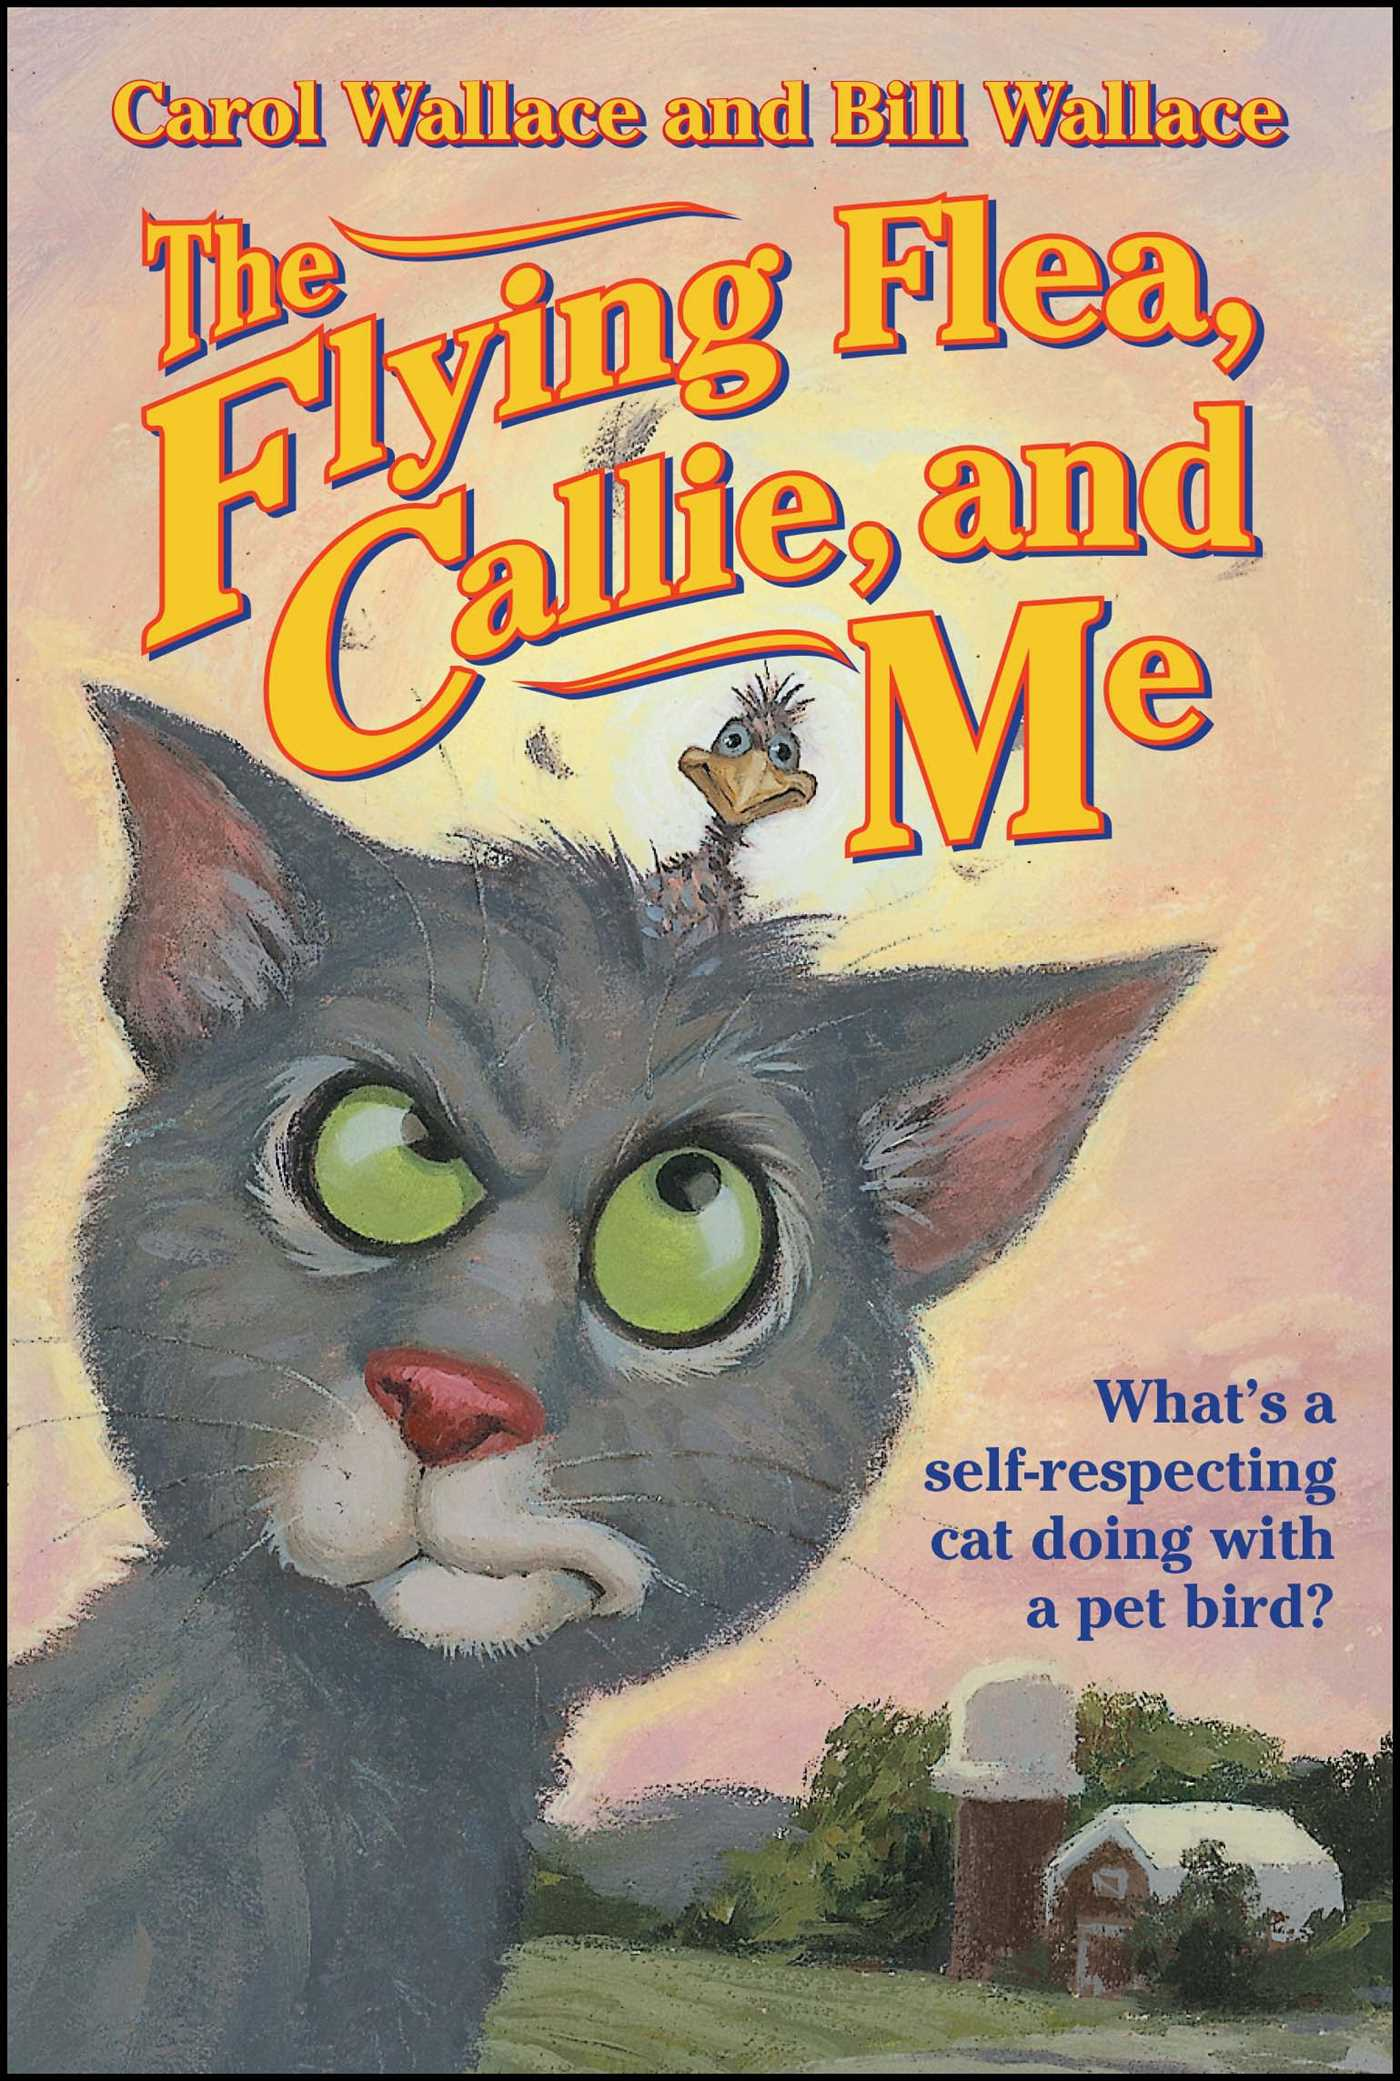 The flying flea callie and me 9780671039684 hr